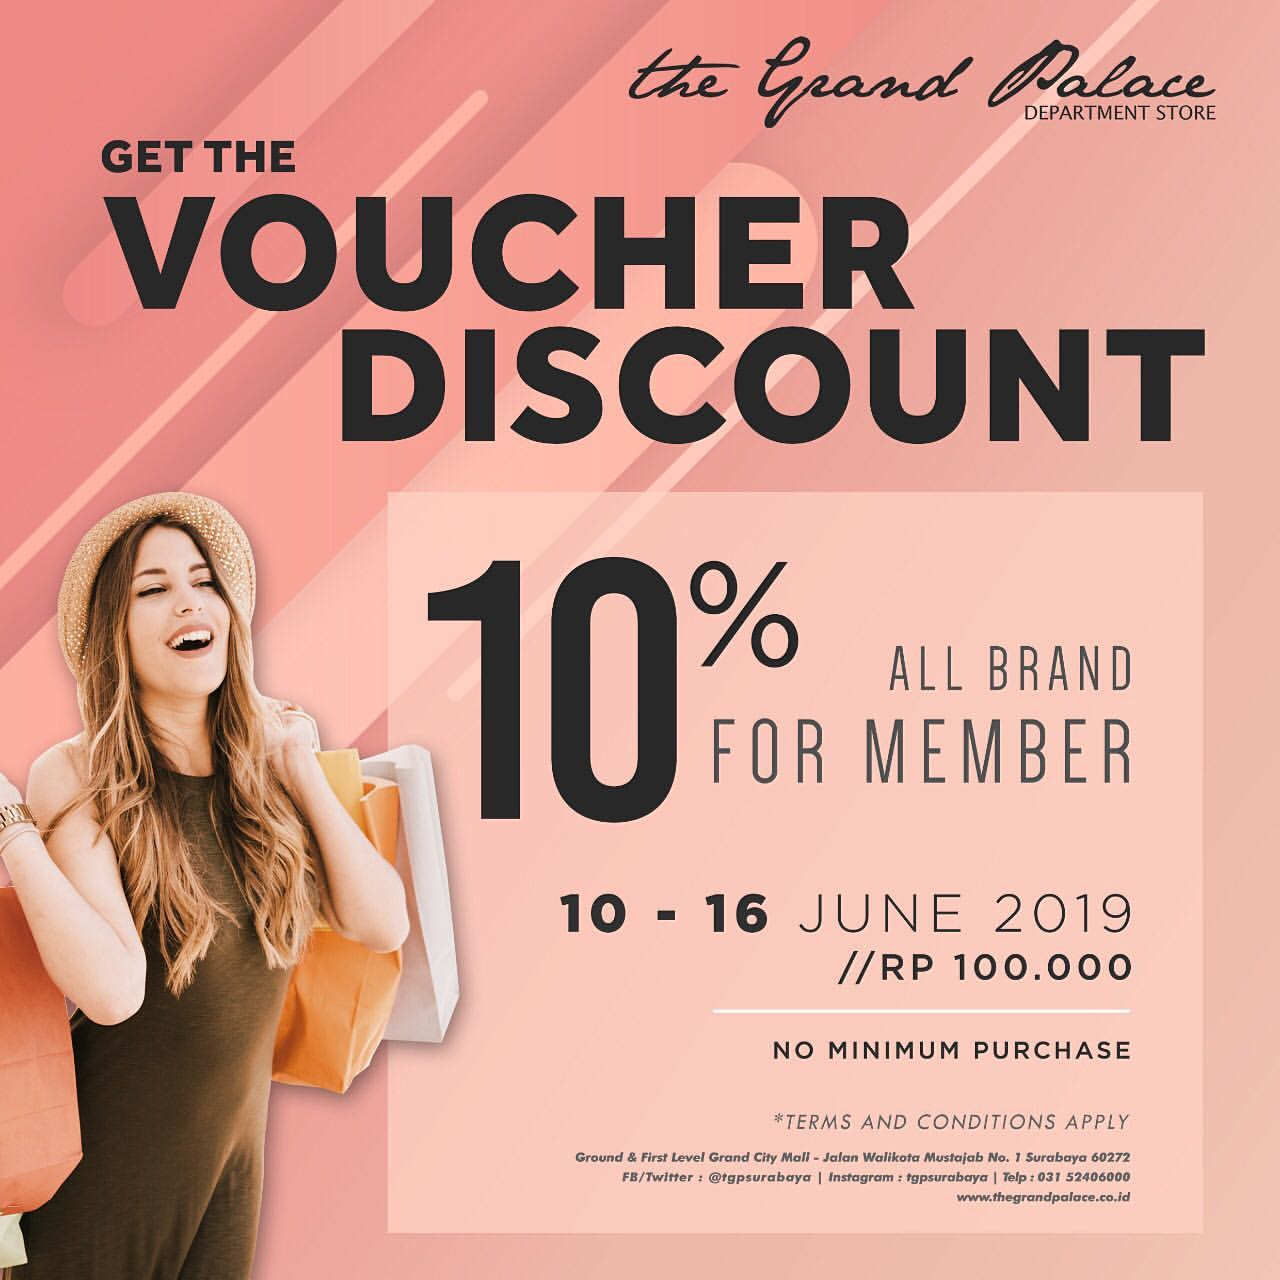 THE GRAND PALACE Promo Get The Voucher Discount 10% All Brand For Member